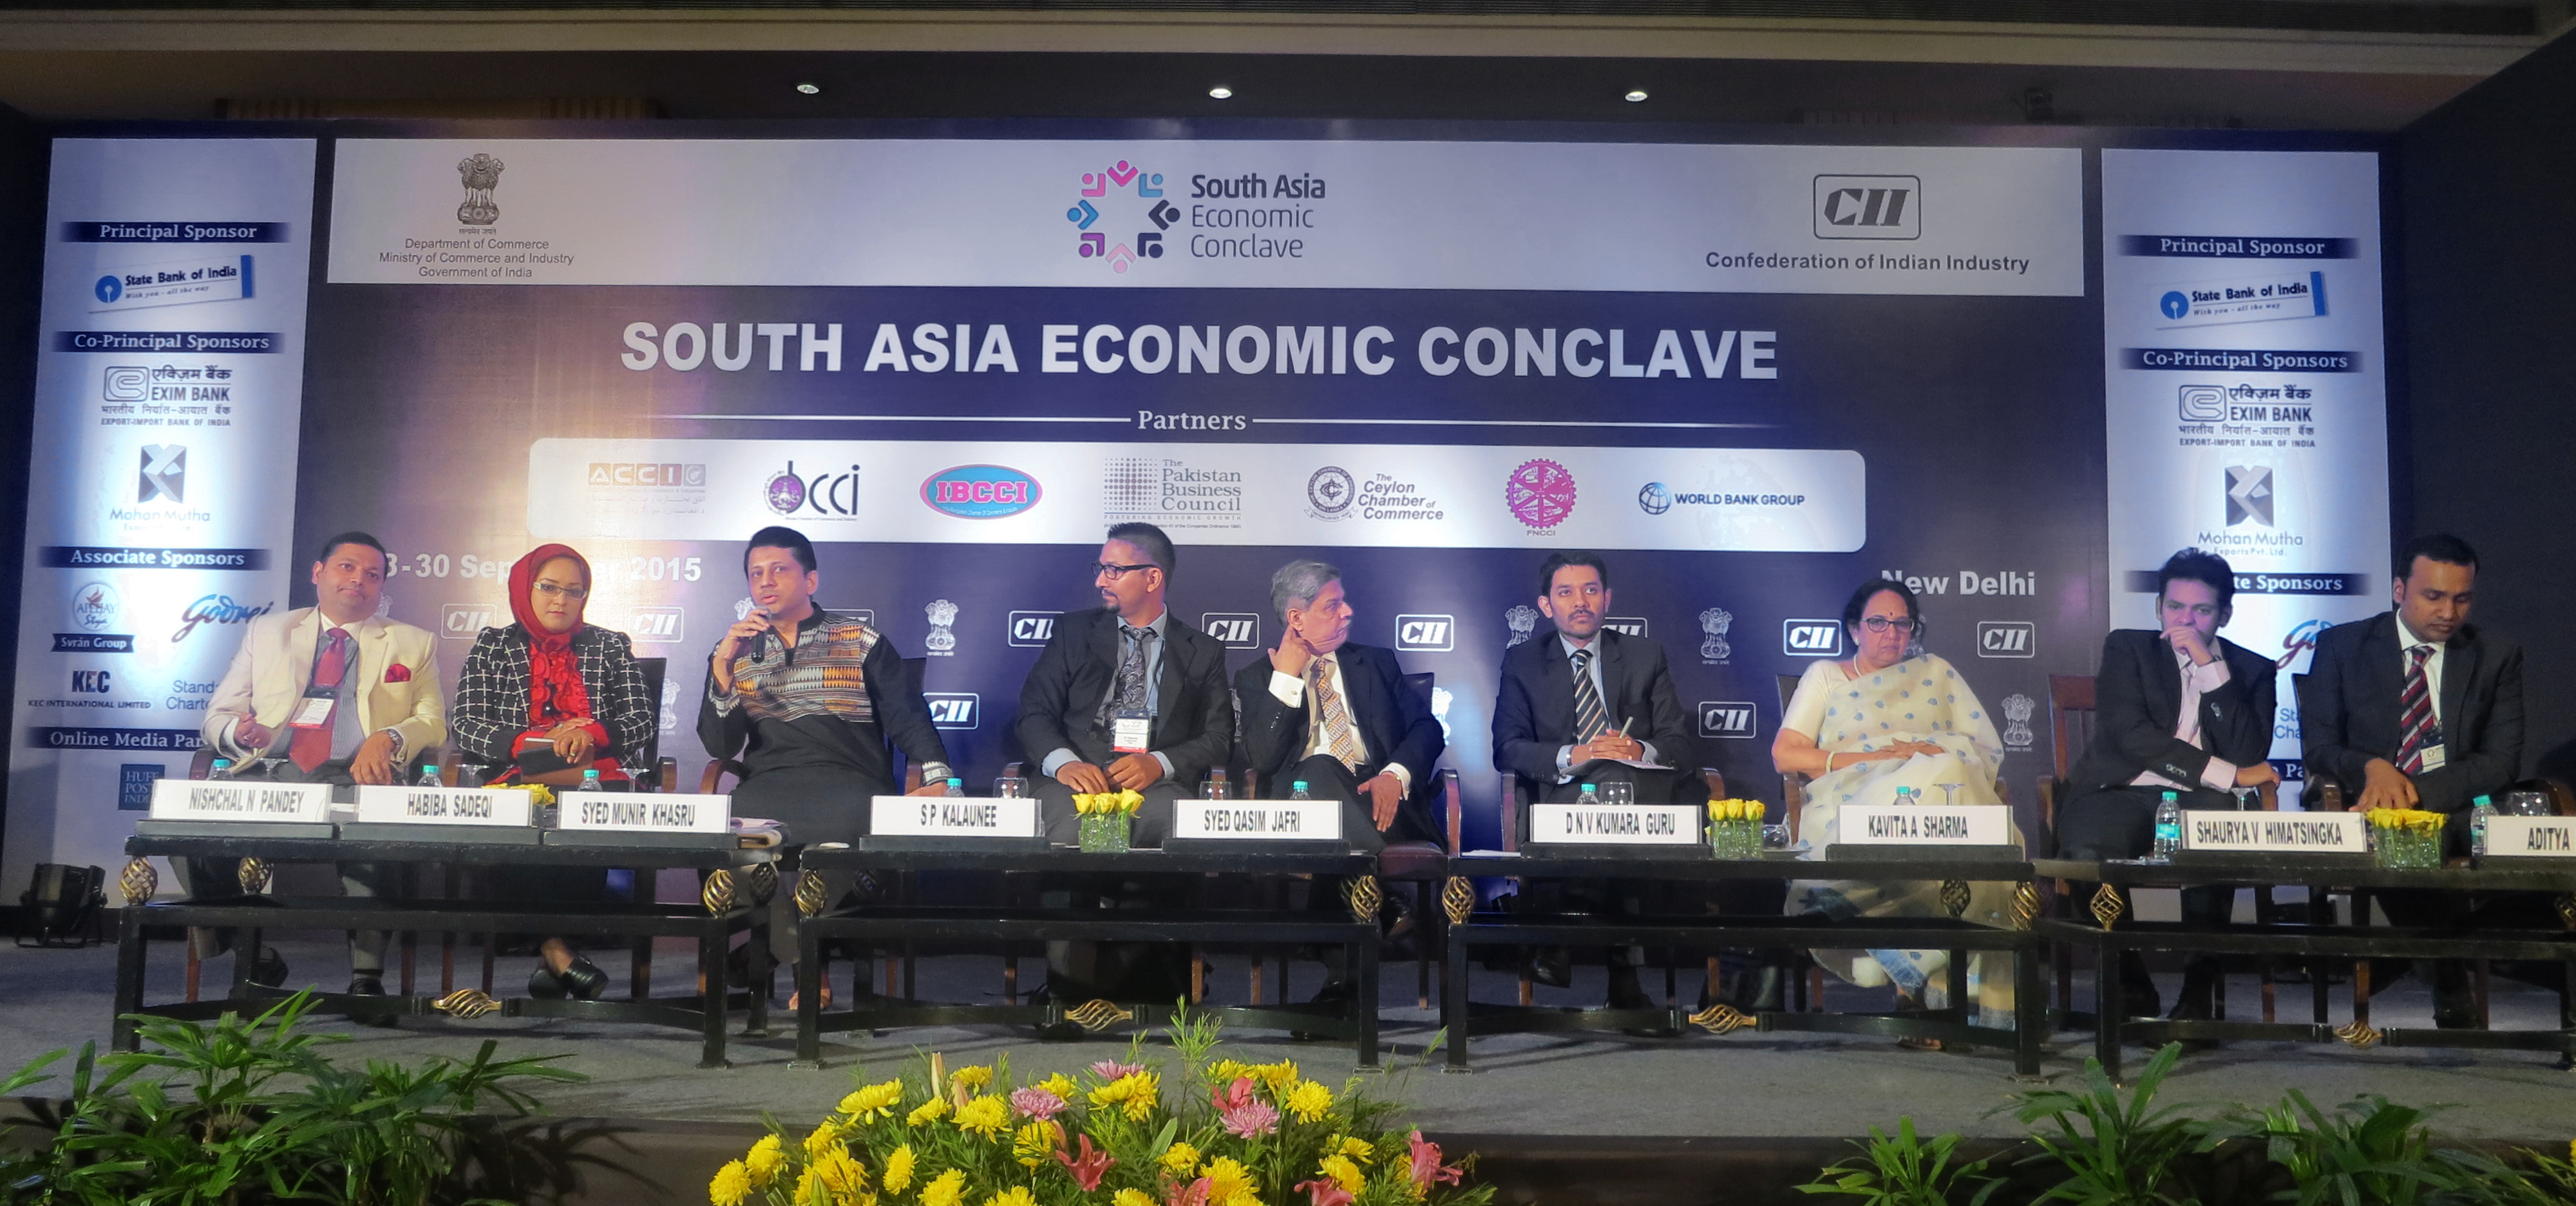 The South Asia Economic Conclave, September 28-30, 2015